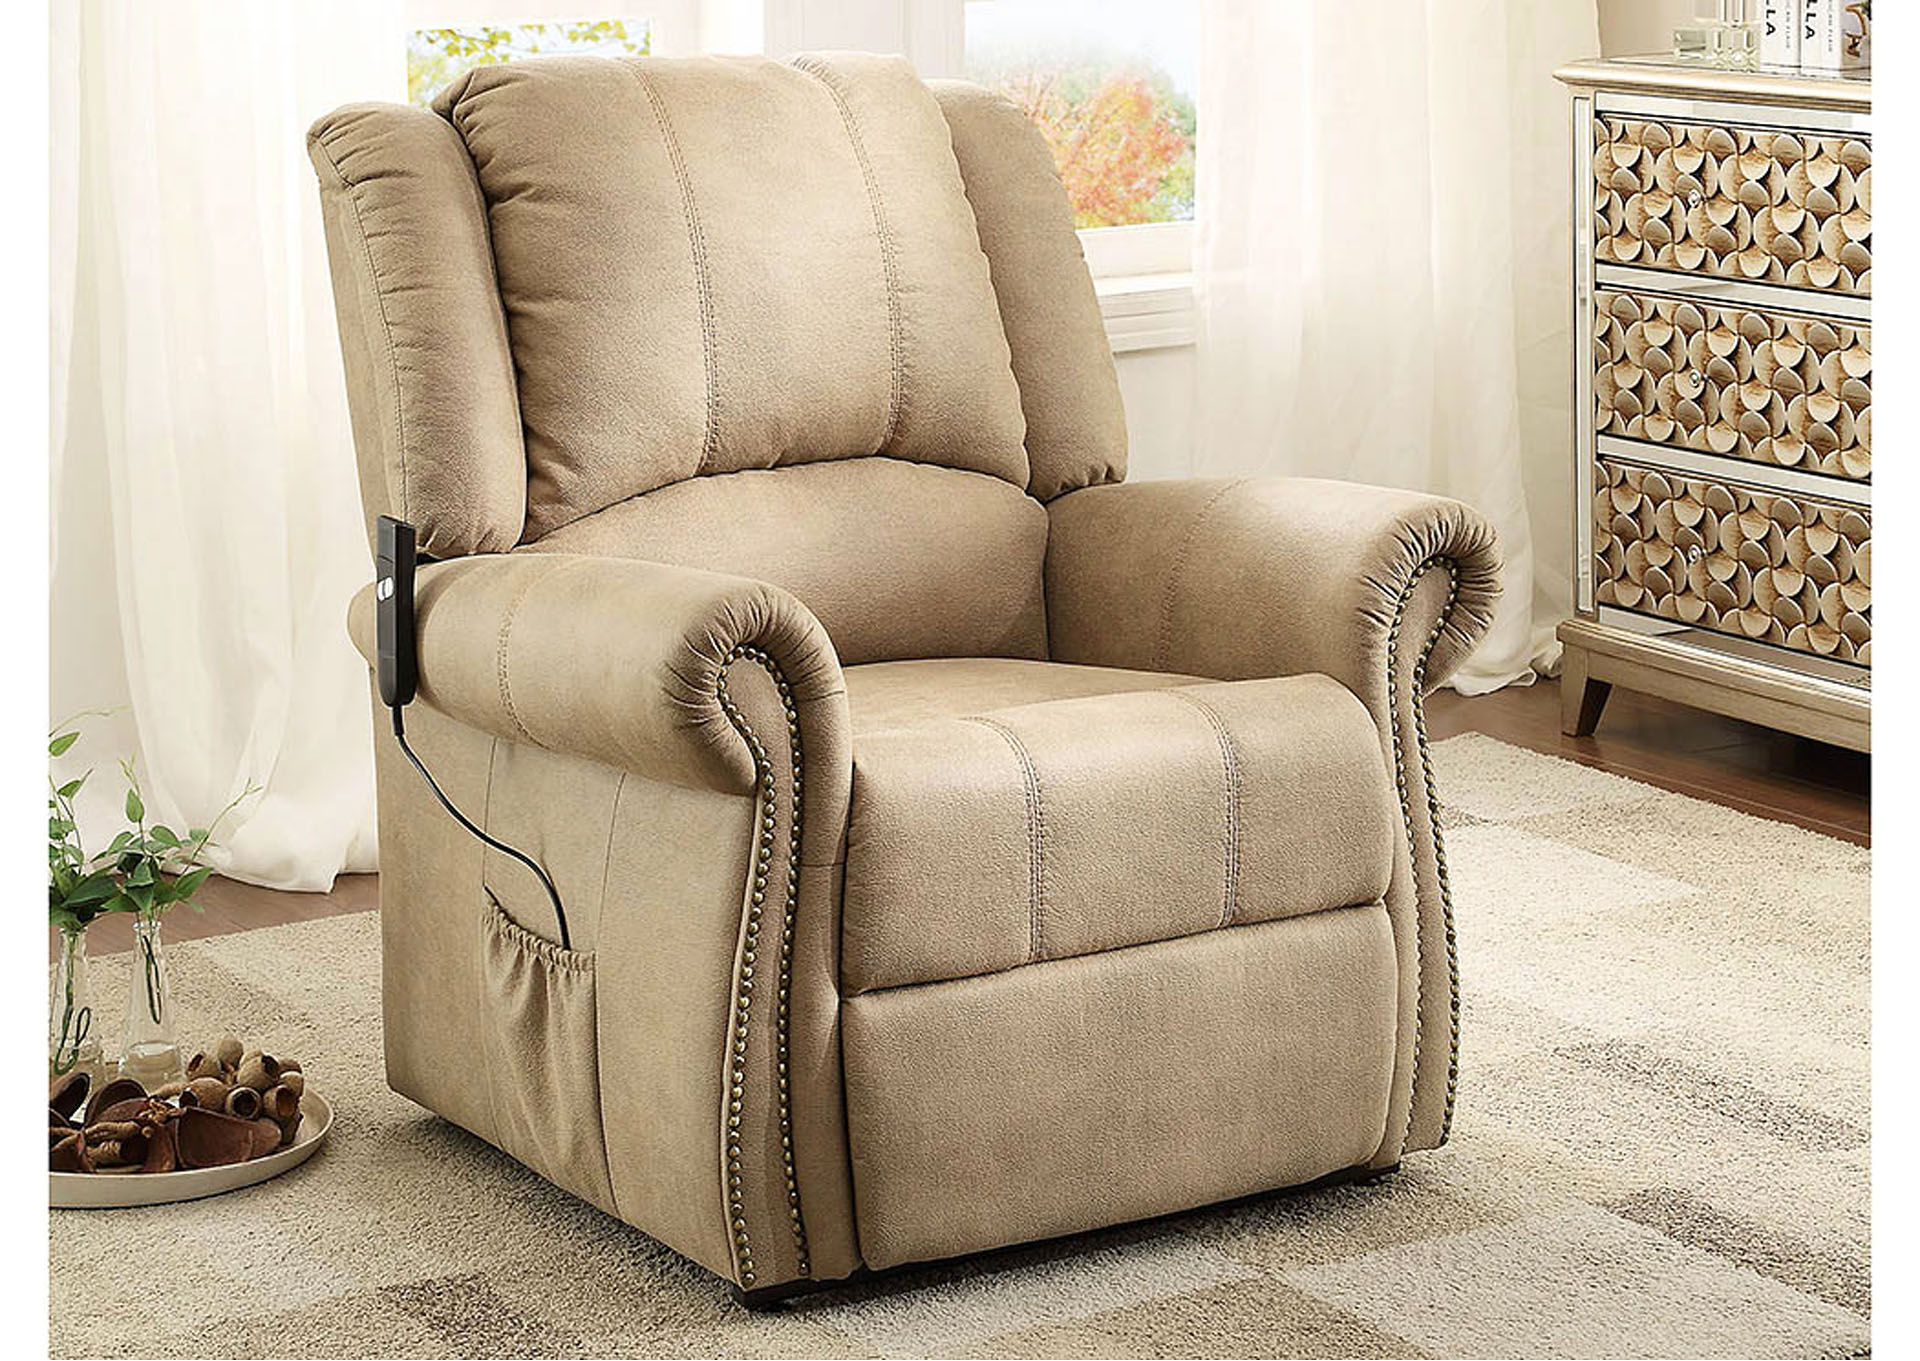 Amazing Trumbull Furniture Trumbull Kids Iola Taupe Power Lift Chair Dailytribune Chair Design For Home Dailytribuneorg